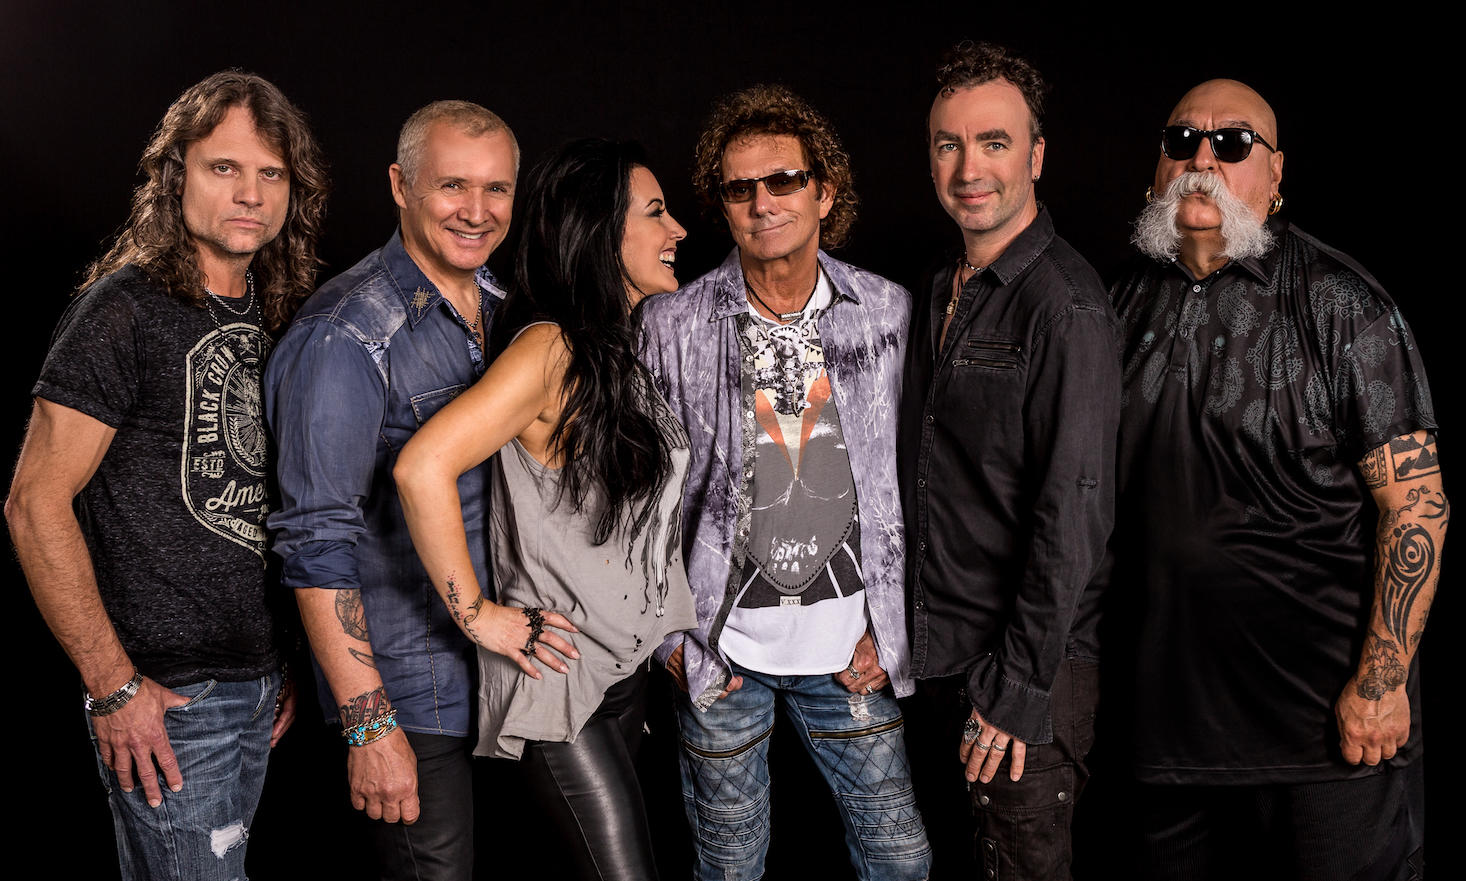 The iconic rock band Starship performs live at Mahnomen's Shooting Star Casino this Friday, April 5 at 8 p.m. (Submitted photo)